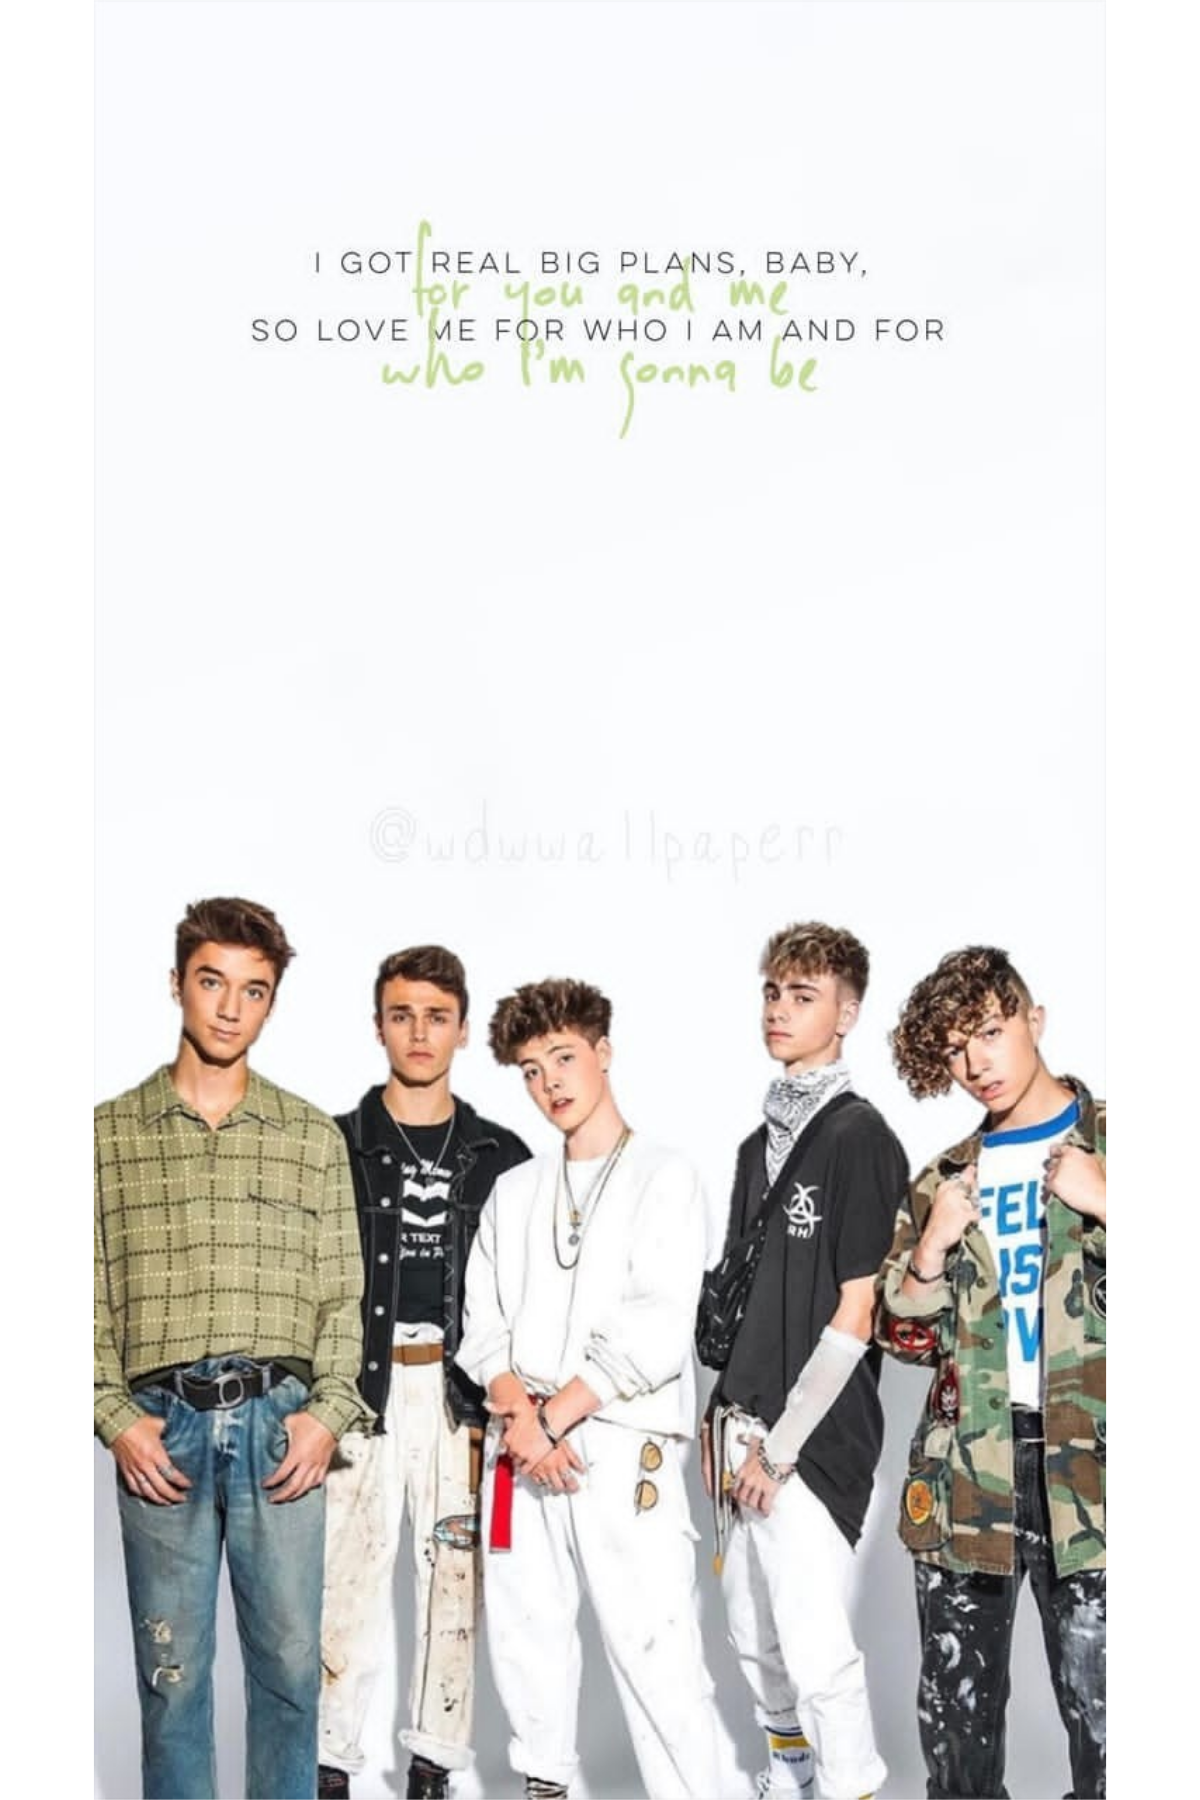 Big Plans Wallpaper Why Don T We Wallpaper Why Dont We Band Why Dont We Boys How To Plan